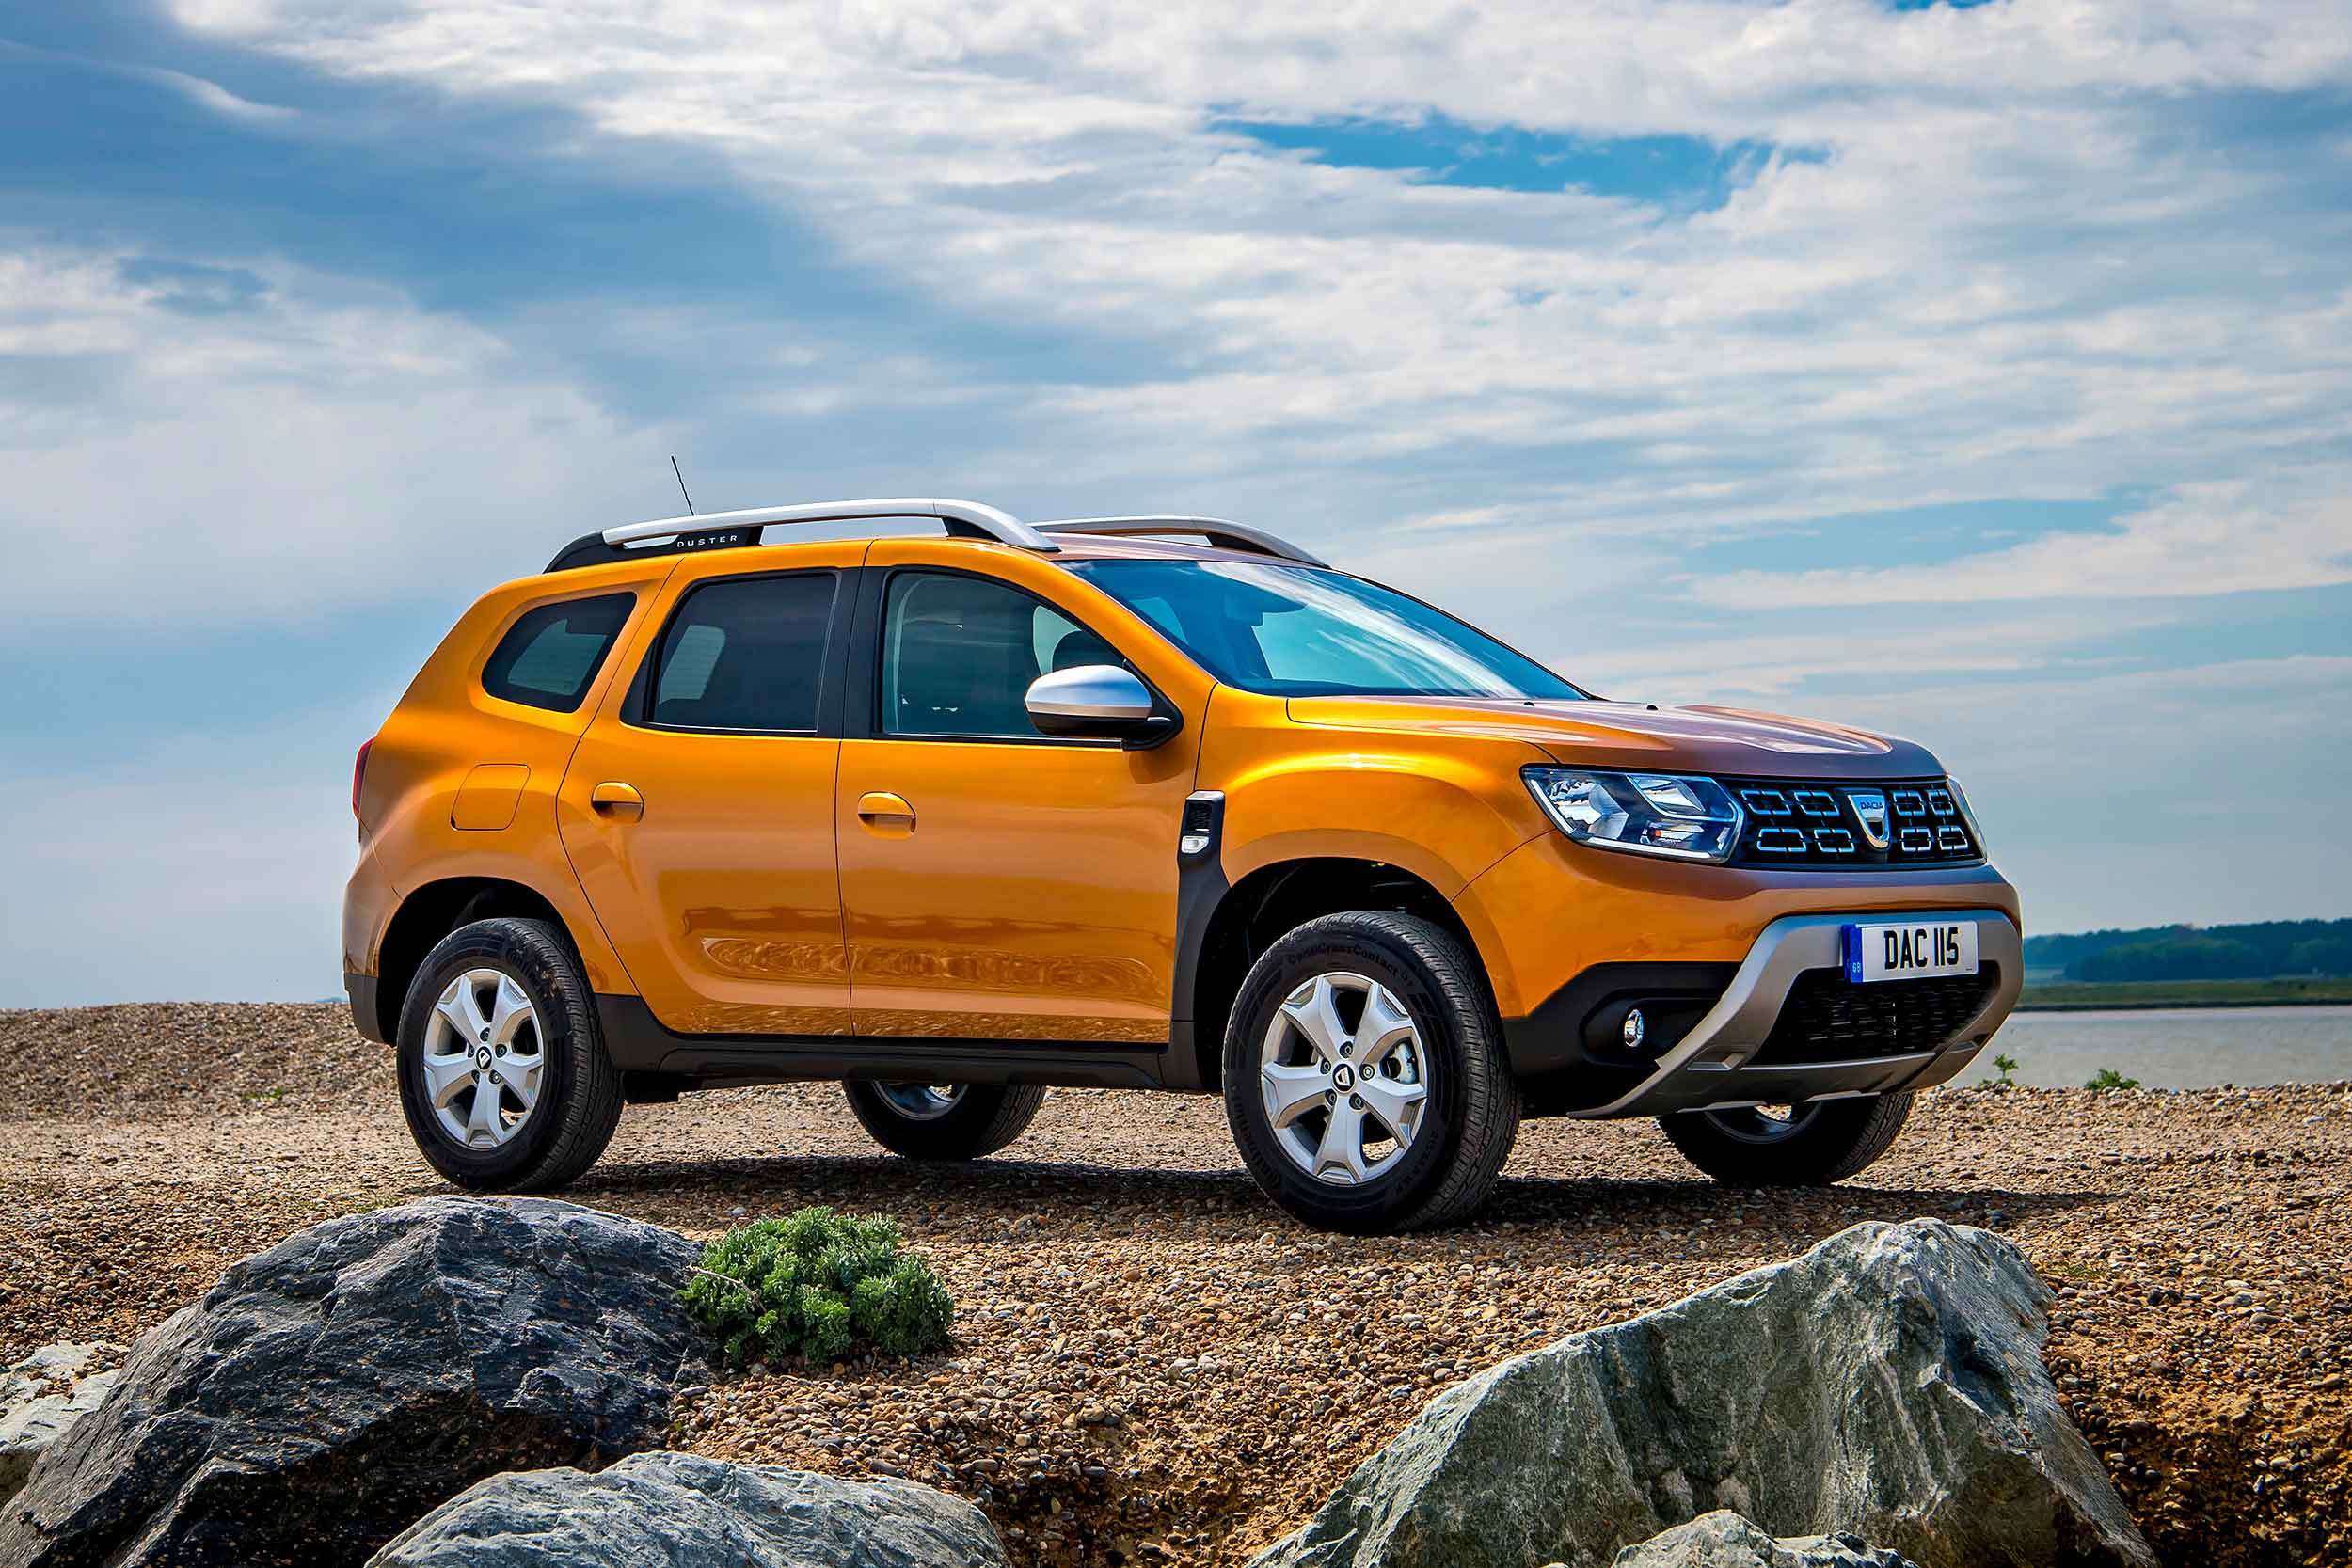 Dacia Duster Comfort SCe 115 can be bought online via Dacia Buy Online